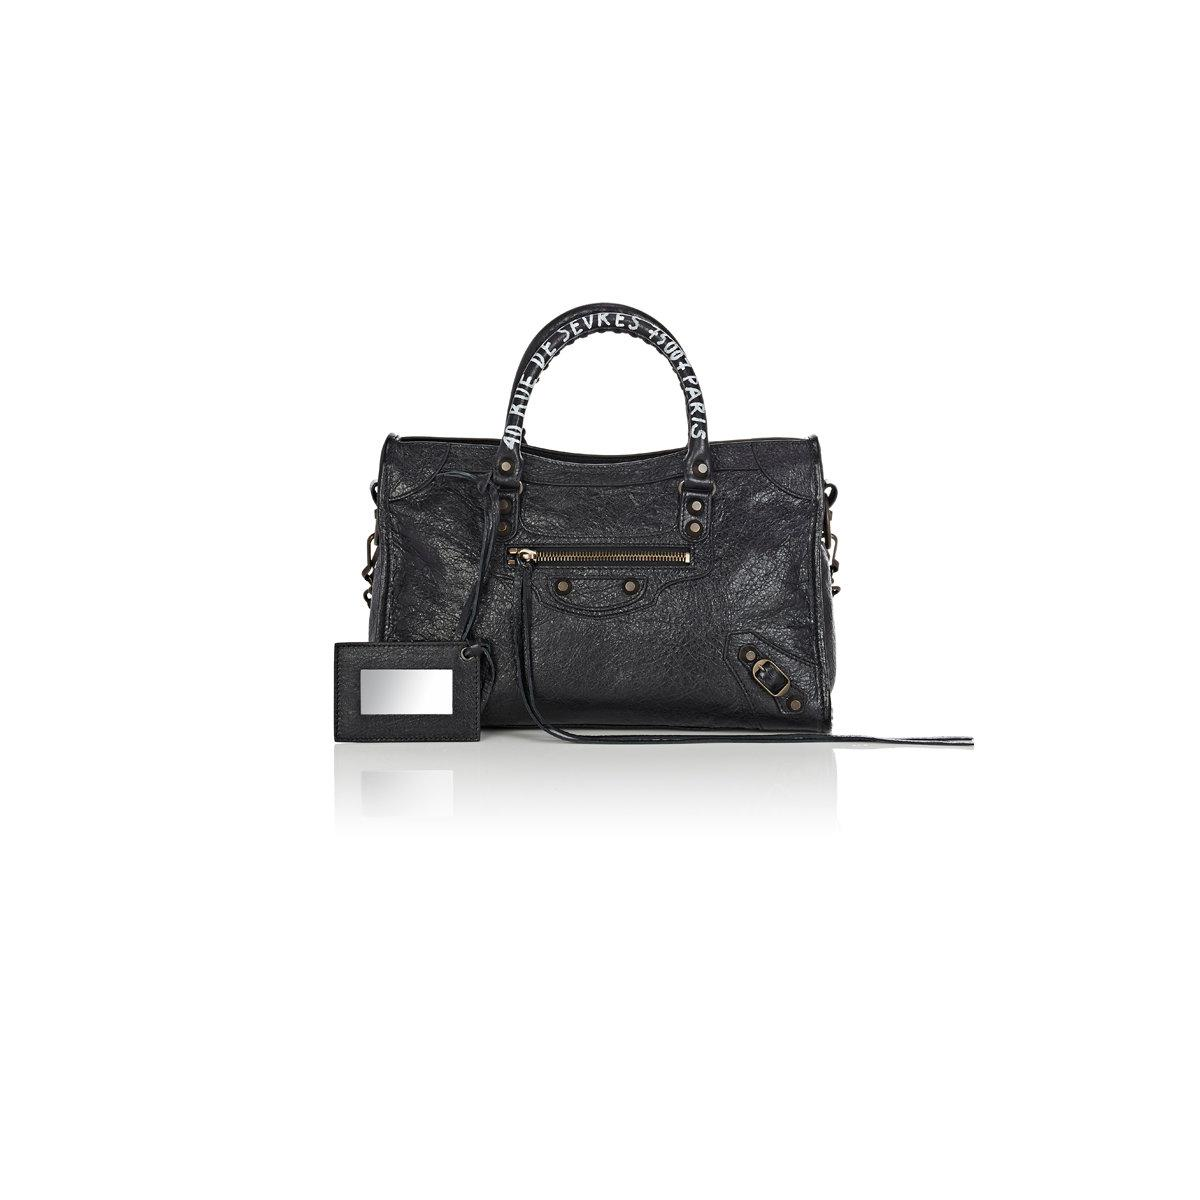 94347c54a4 Lyst - Balenciaga Arena Leather Classic City Small Bag in Black